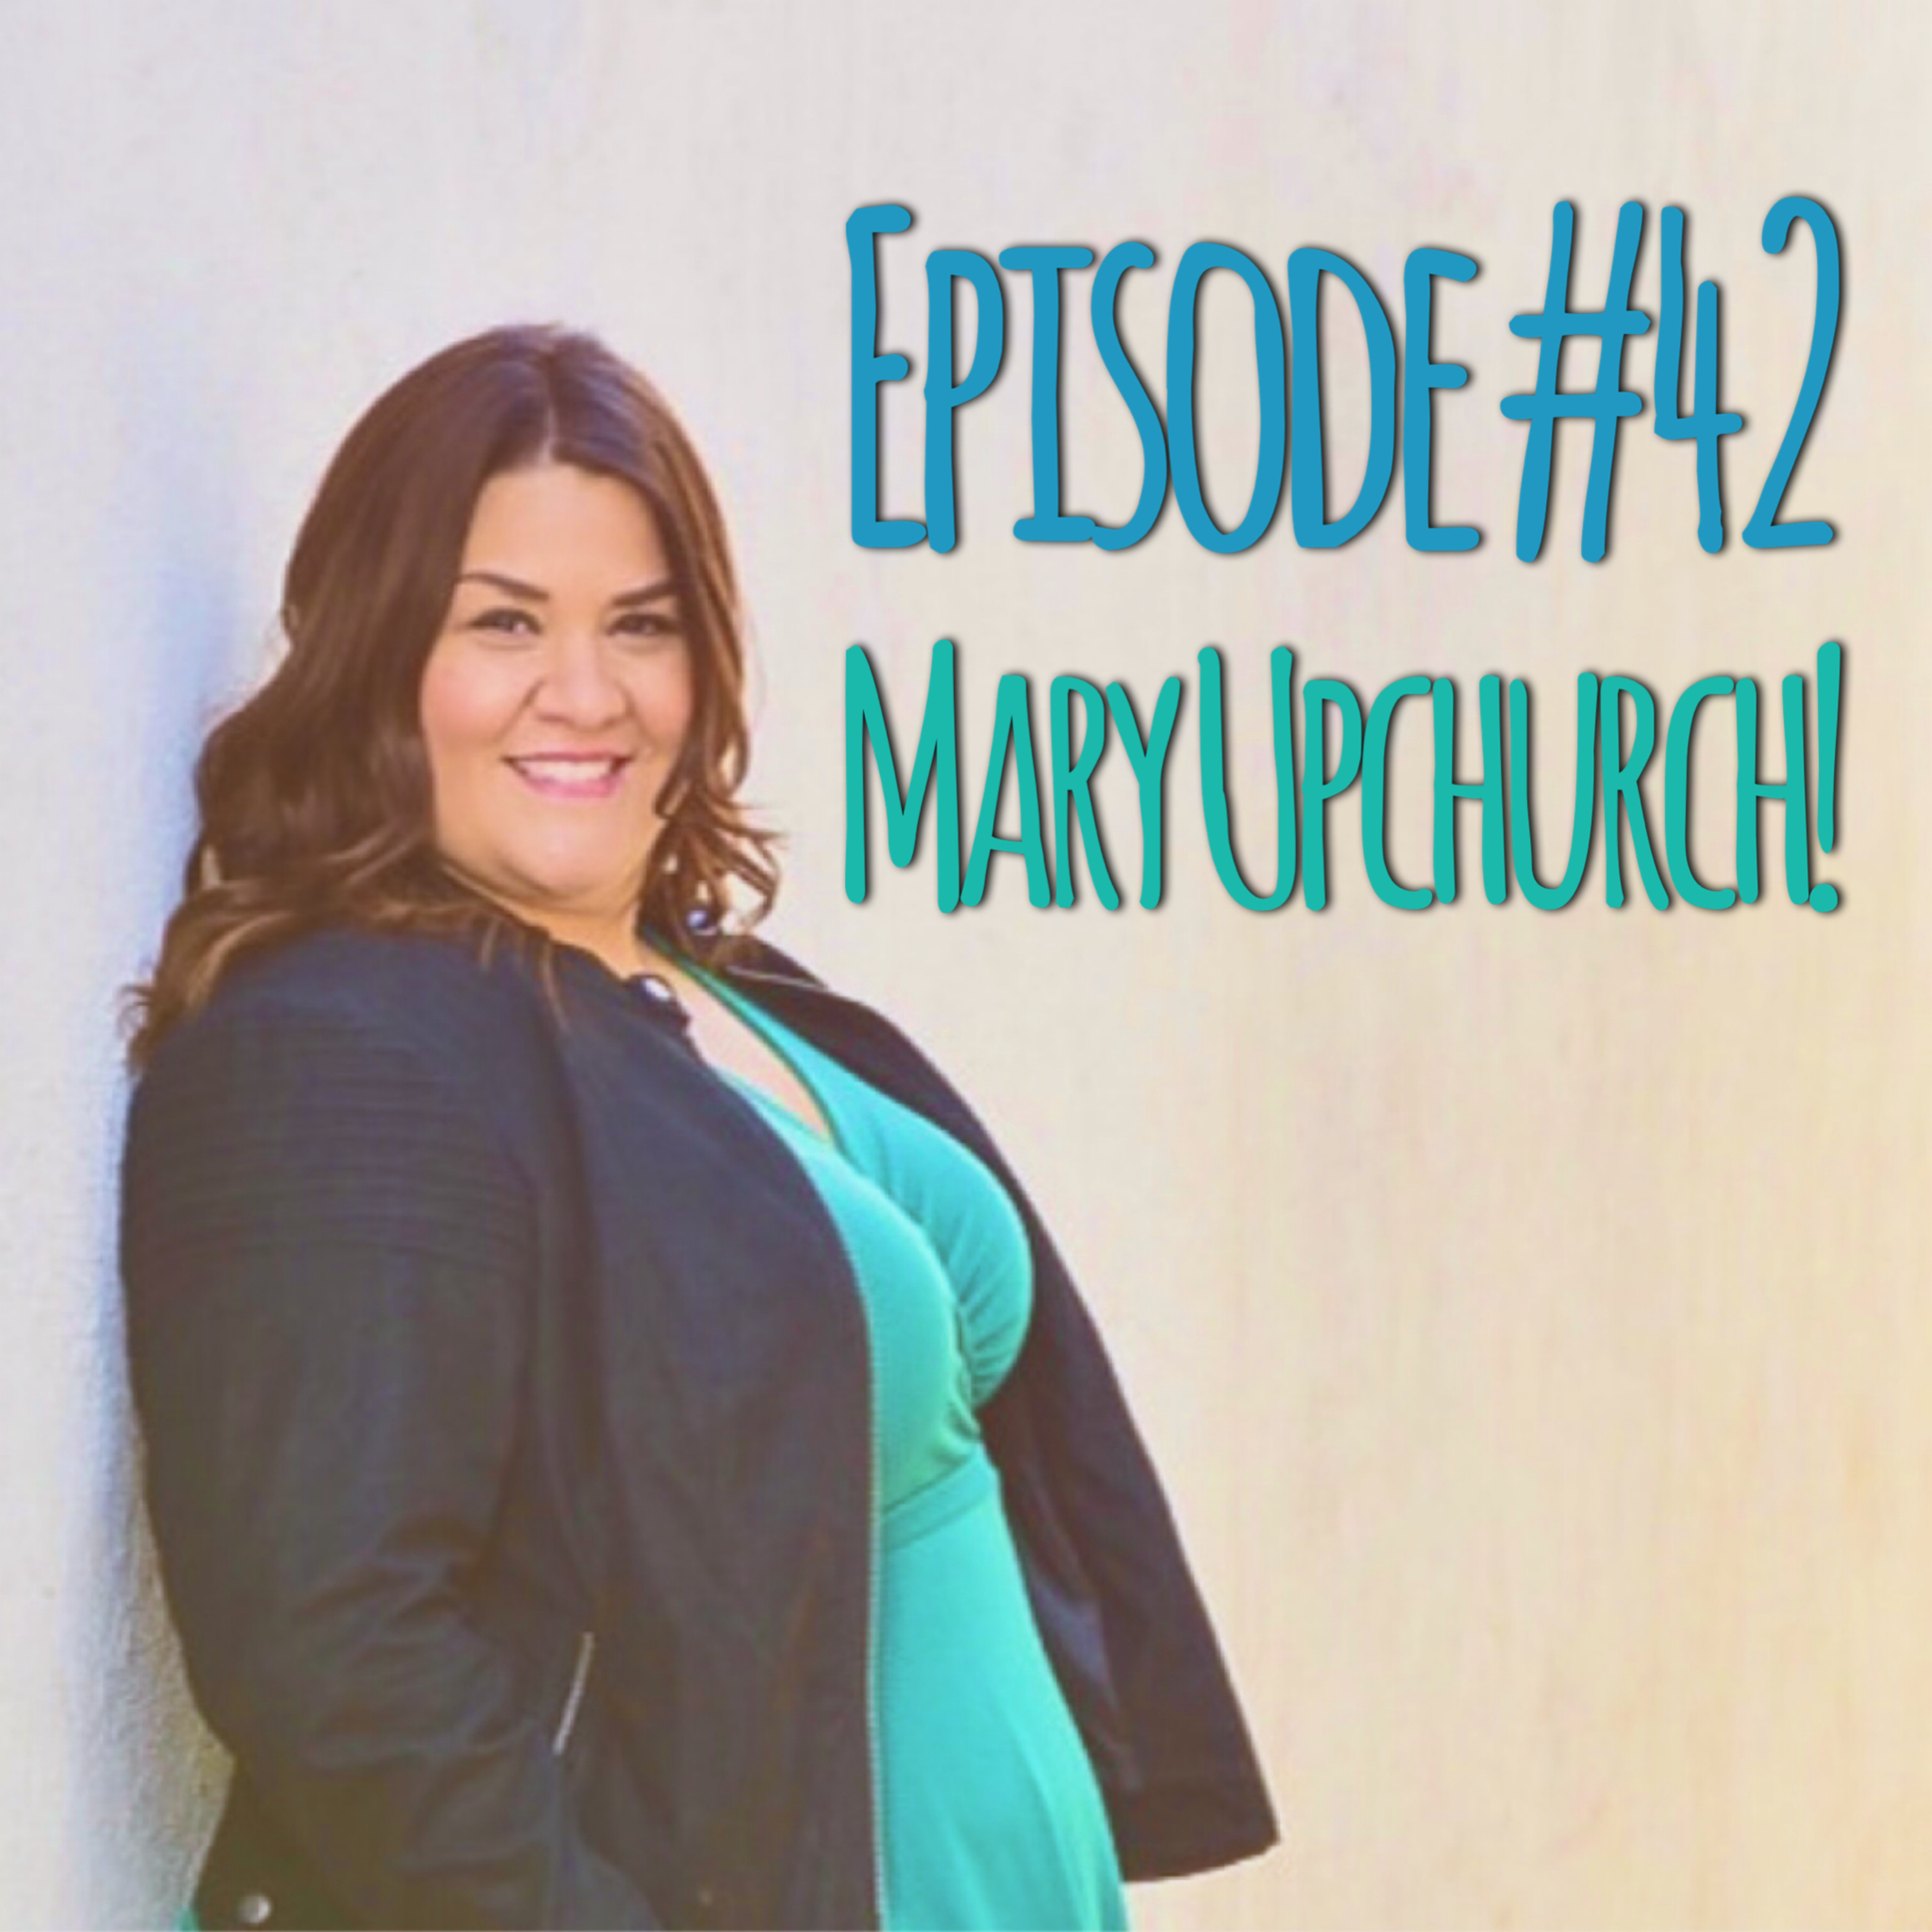 Episode #42 - Mary Upchurch